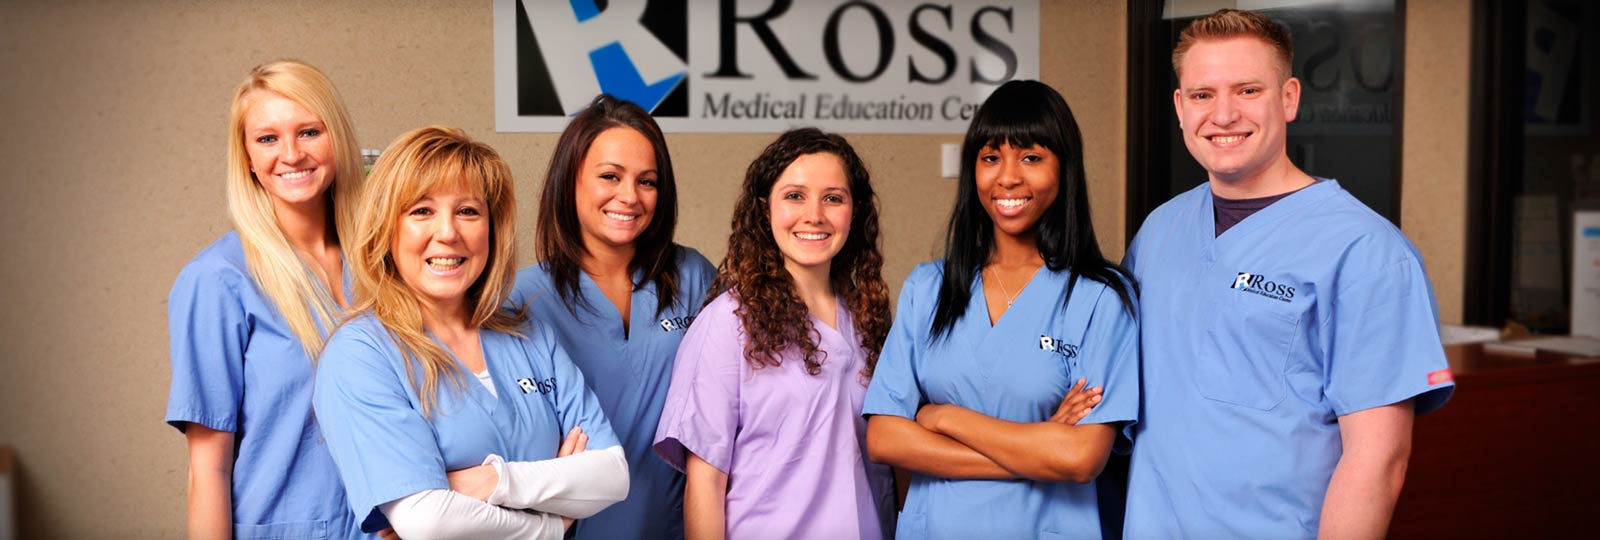 Ross Medical Education Center